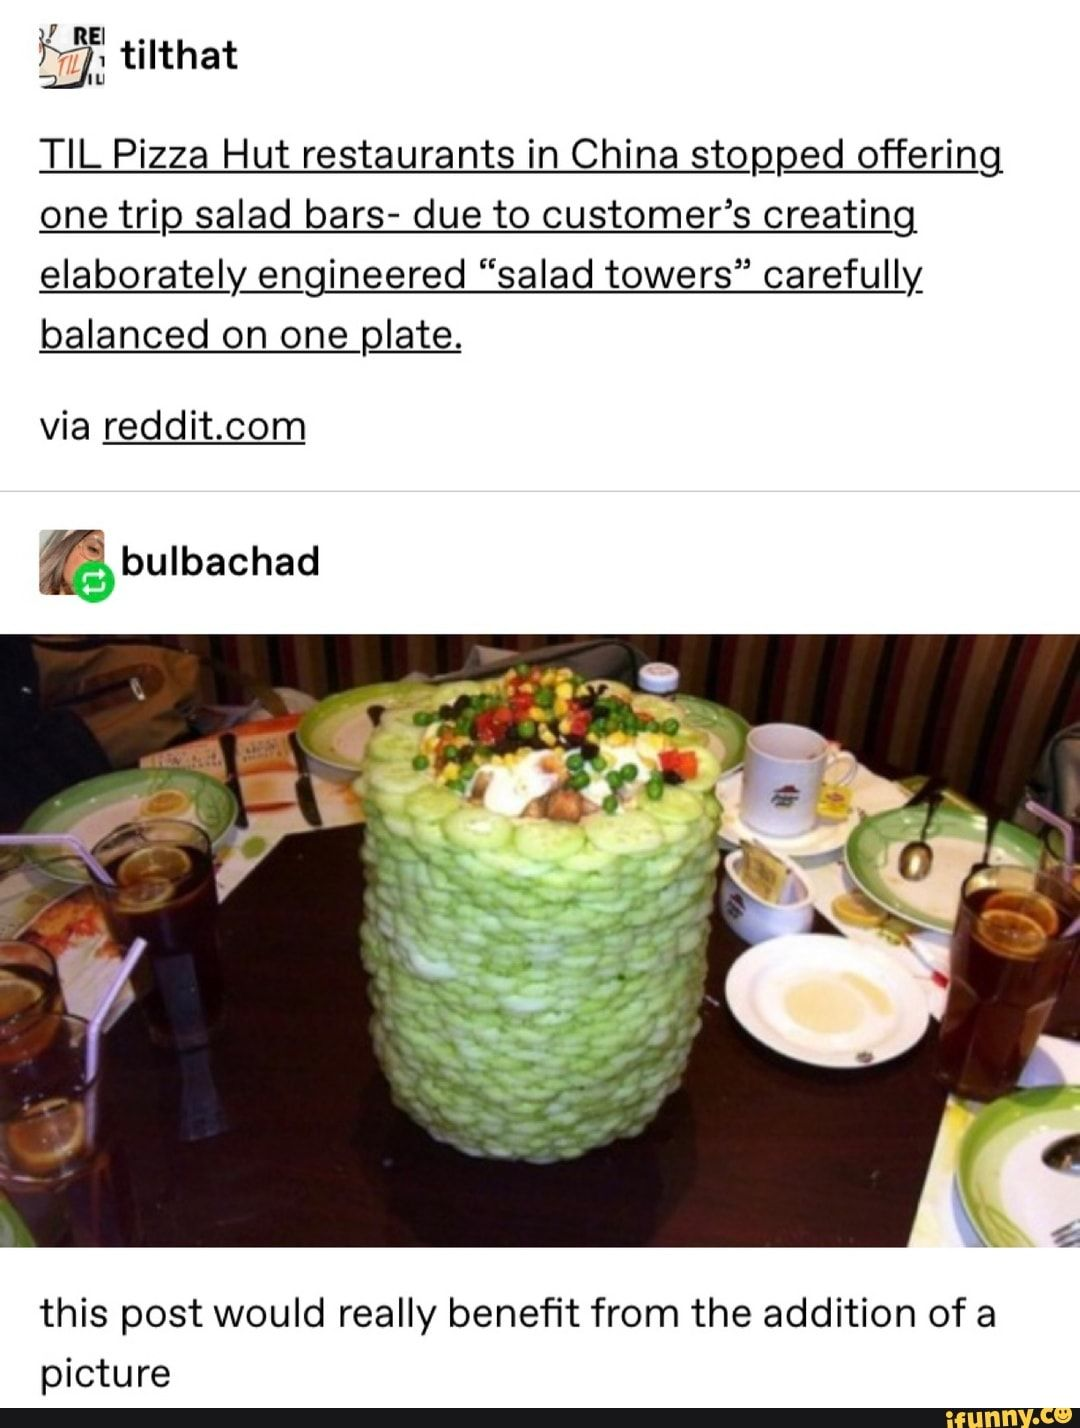 E L Til Pizza Hut Restaurants In China Stogped Offering One Trip Salad Bars Due To Customer S Creating Elaborately Engineered Salad Towers Carefuliy Balance Tumblr Funny Memes Funny